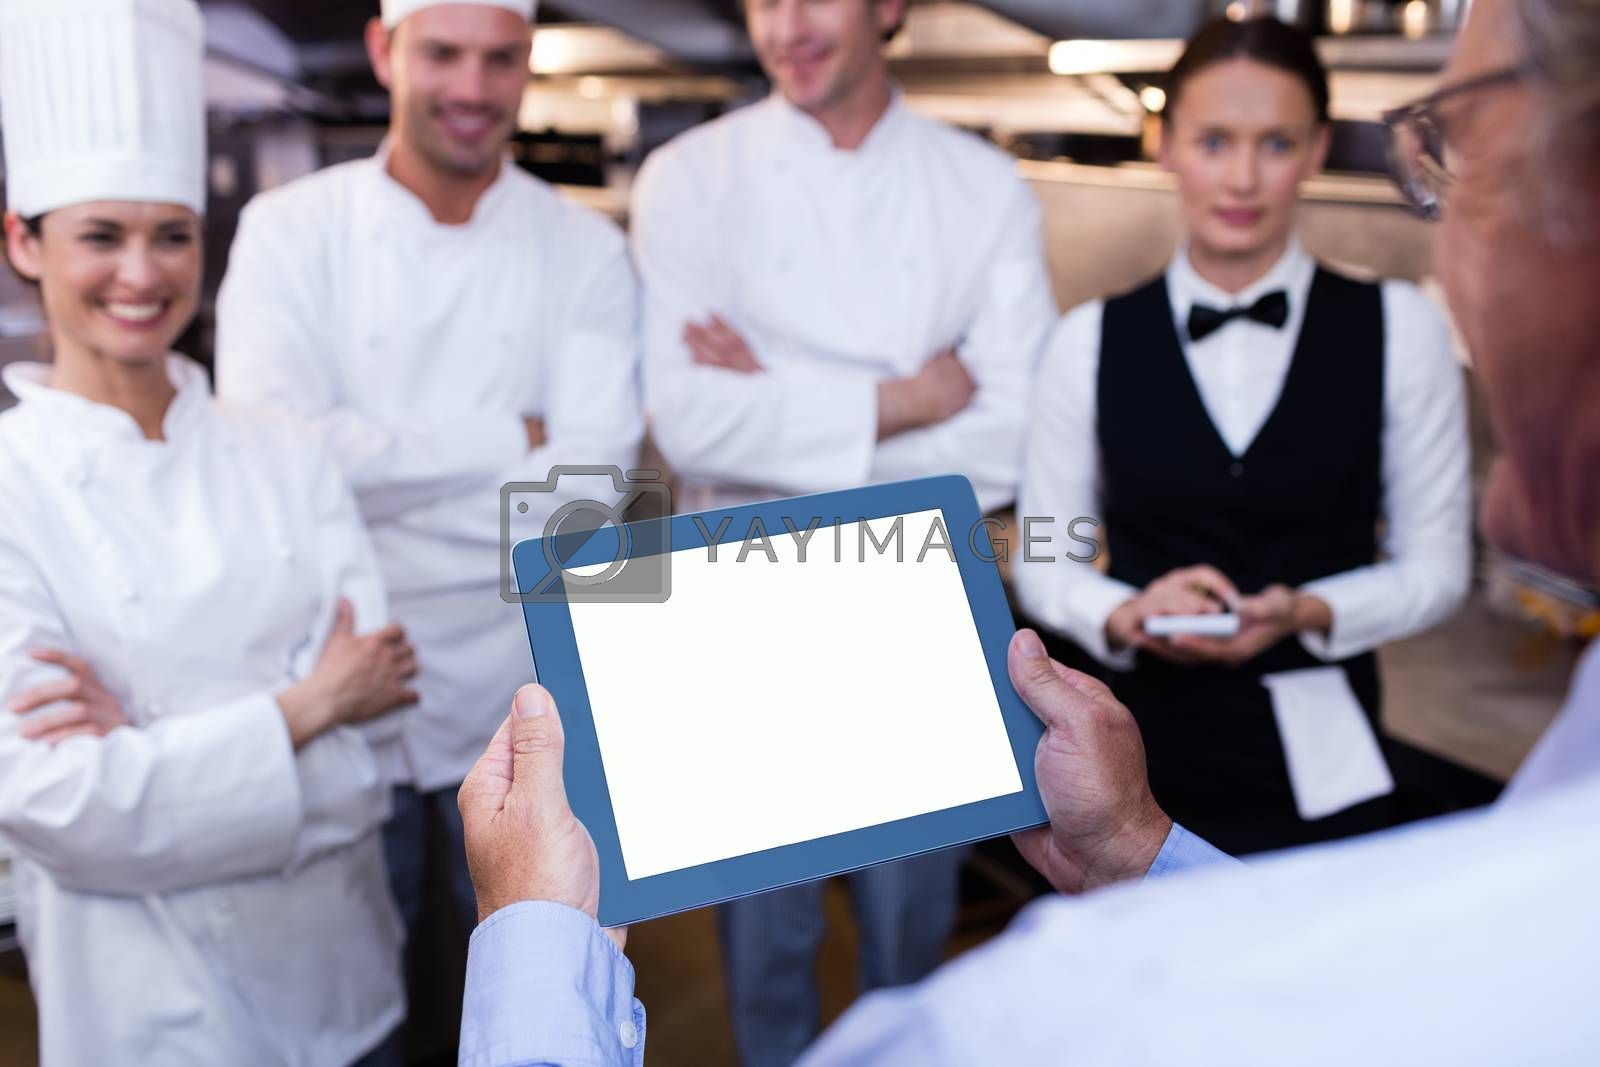 Restaurant manager briefing to his kitchen staff in the commercial kitchen